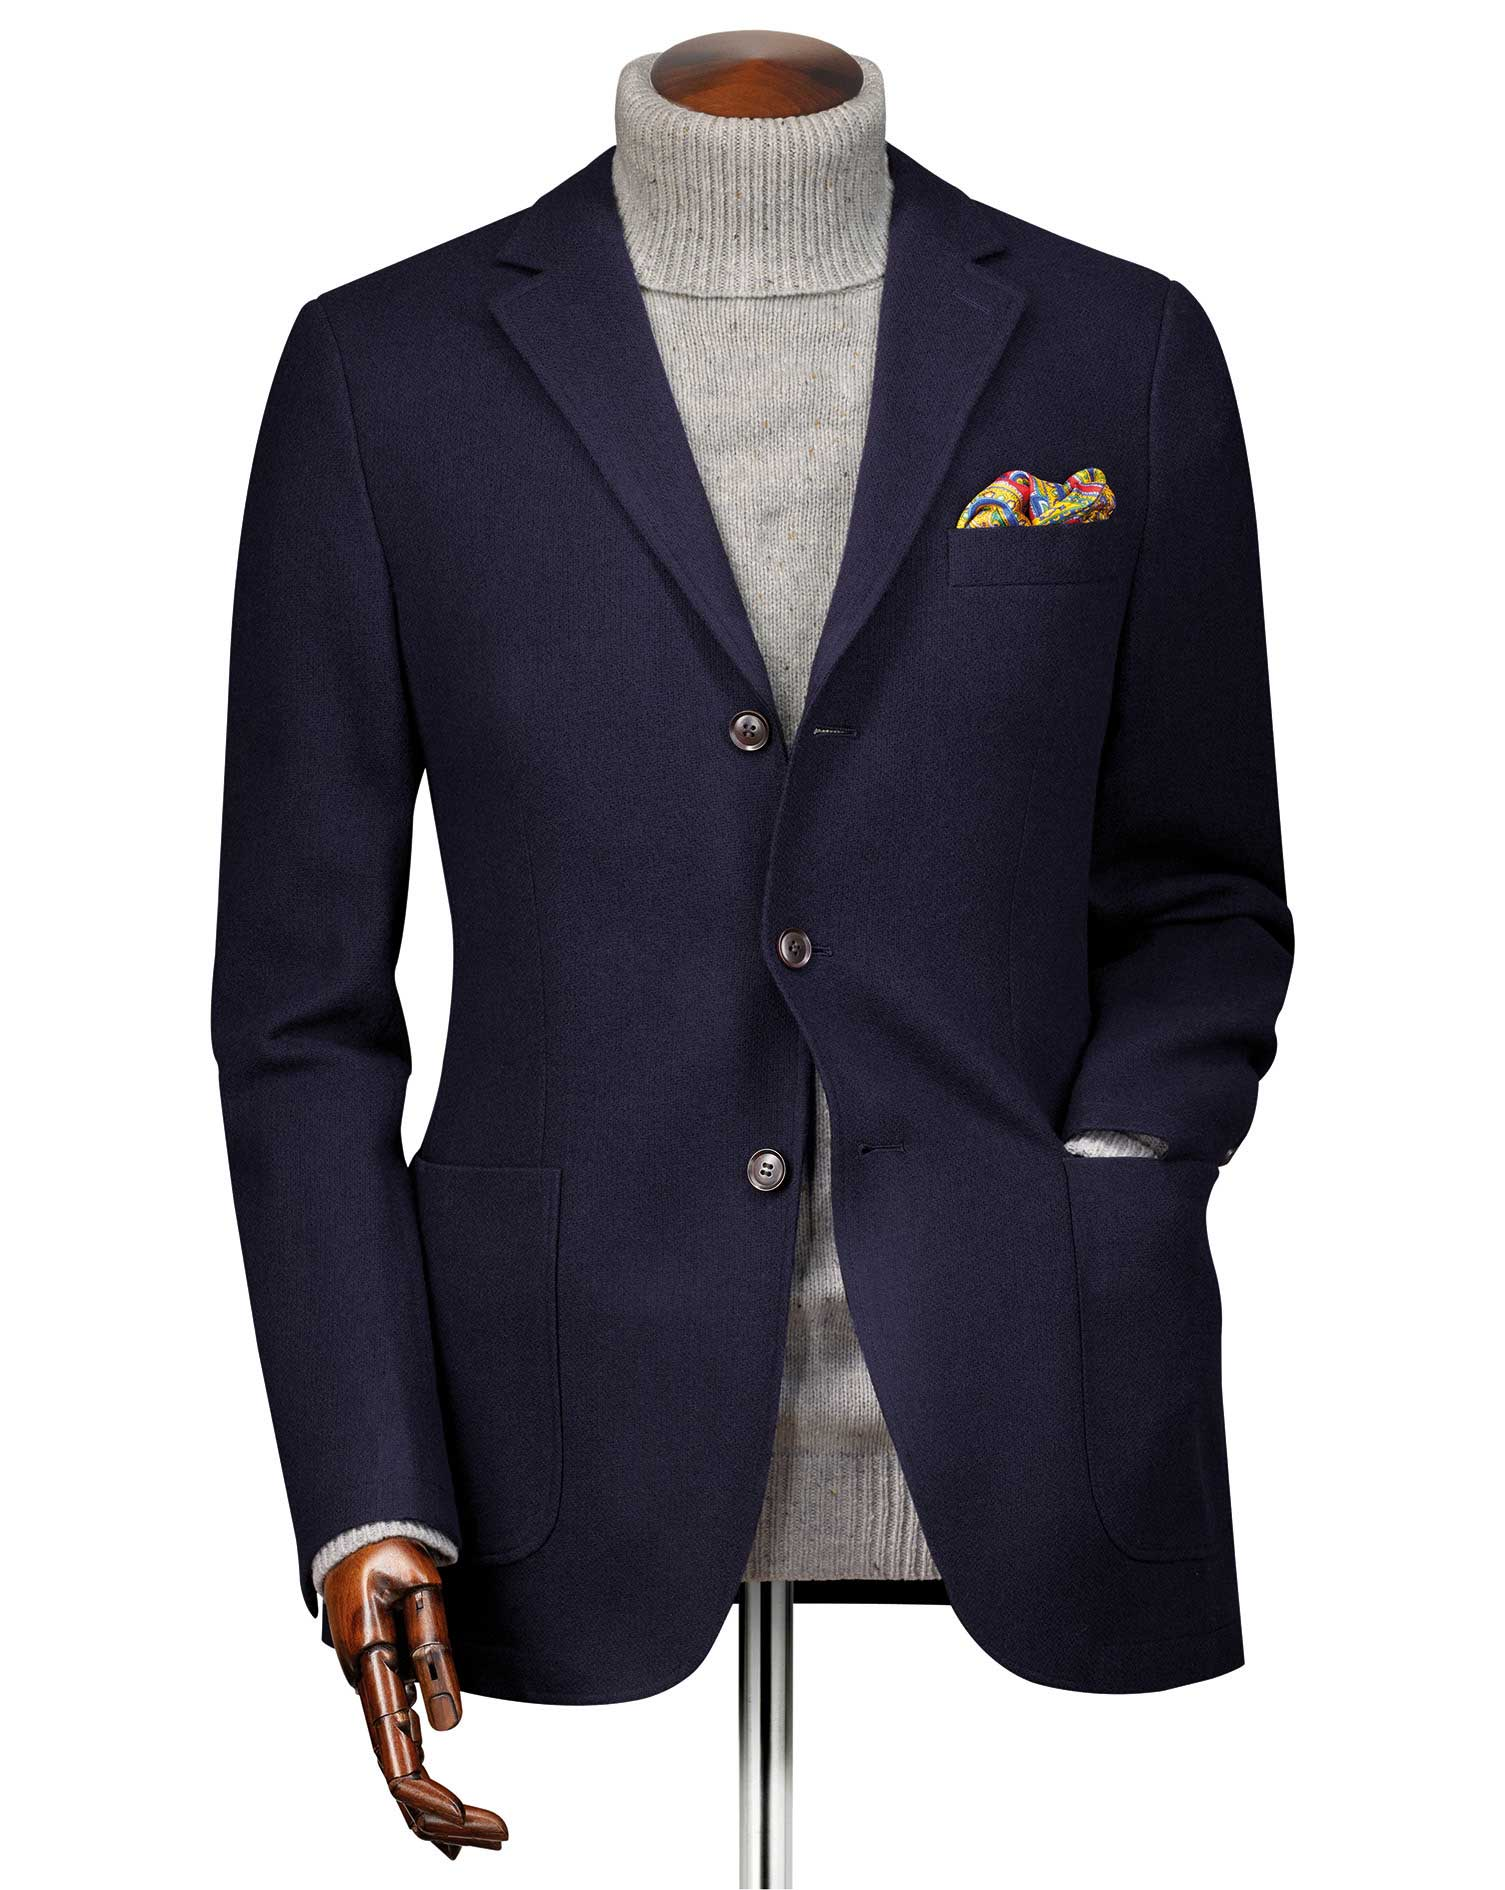 Slim Fit Navy Textured Wool Jacket Size 38 Regular by Charles Tyrwhitt